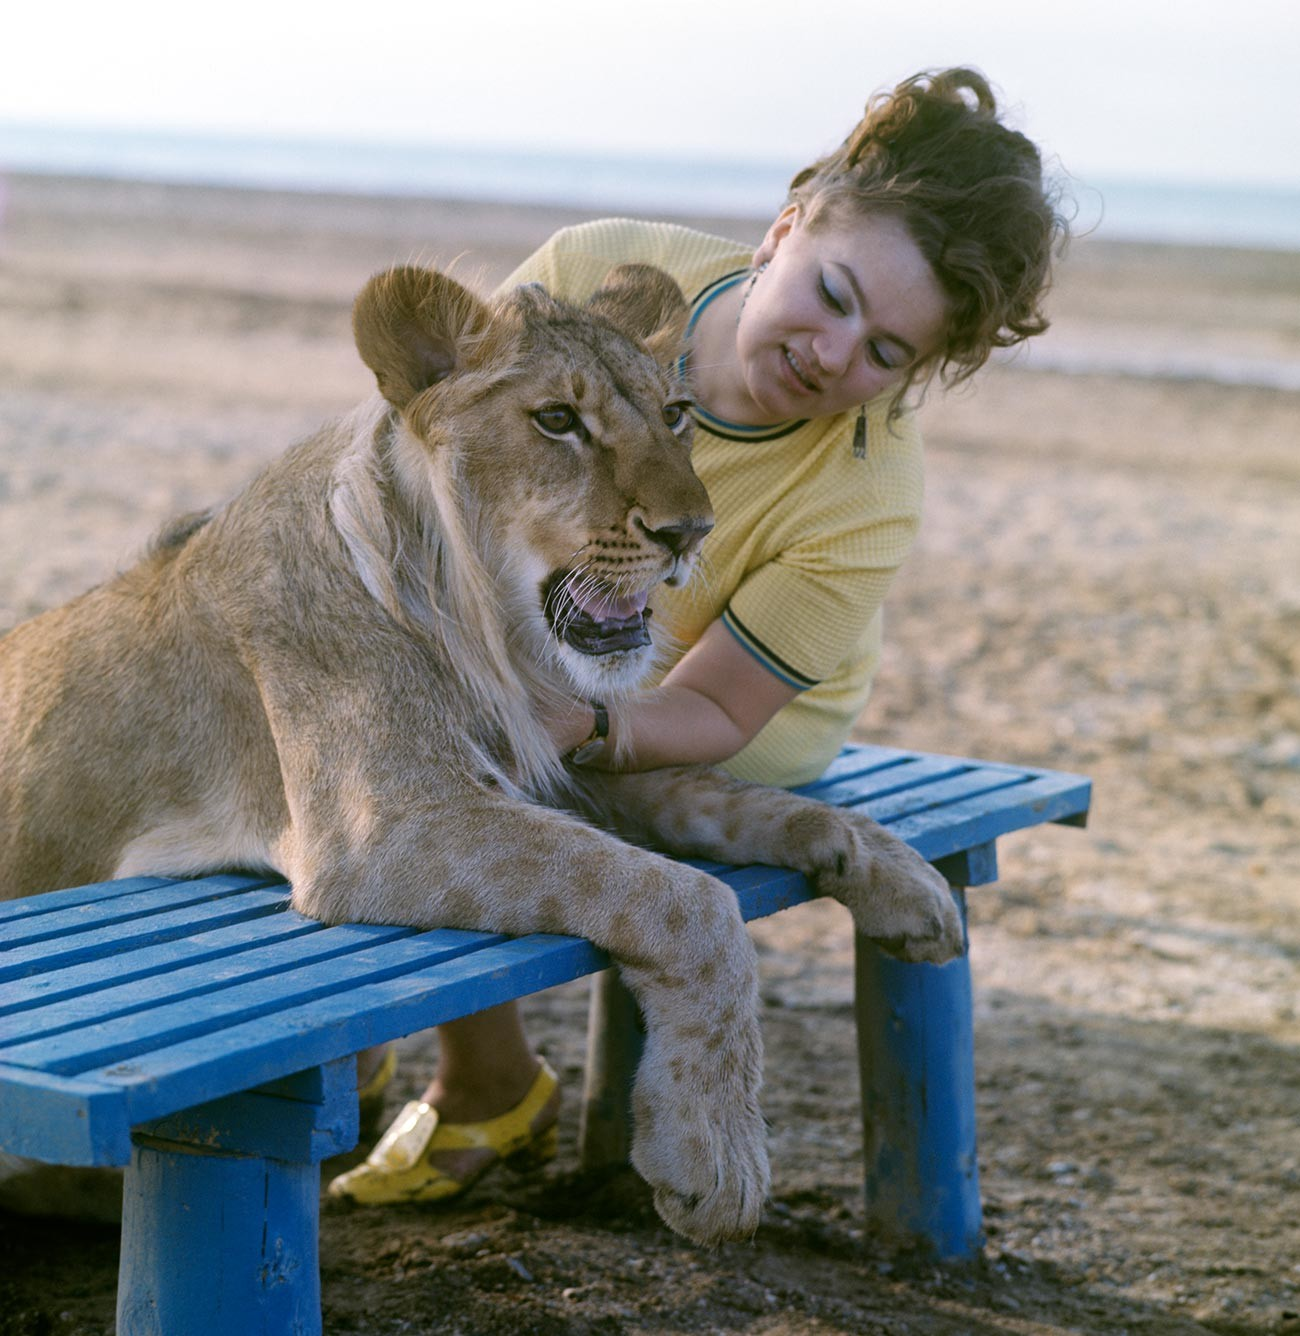 Nina Berberova on a walk with her pet lion King. The coast of the Caspian Sea